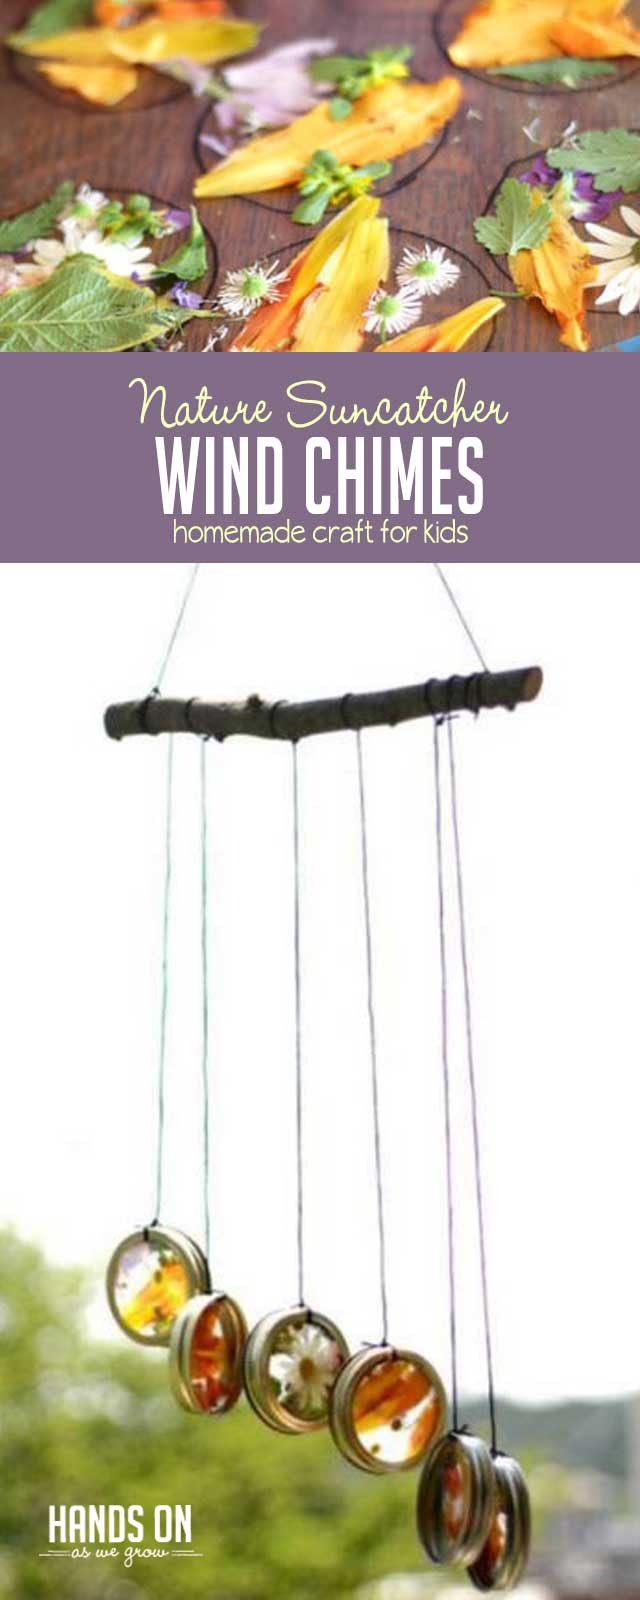 Super simple suncatcher wind chimes to make with your kids using flowers and leaves!